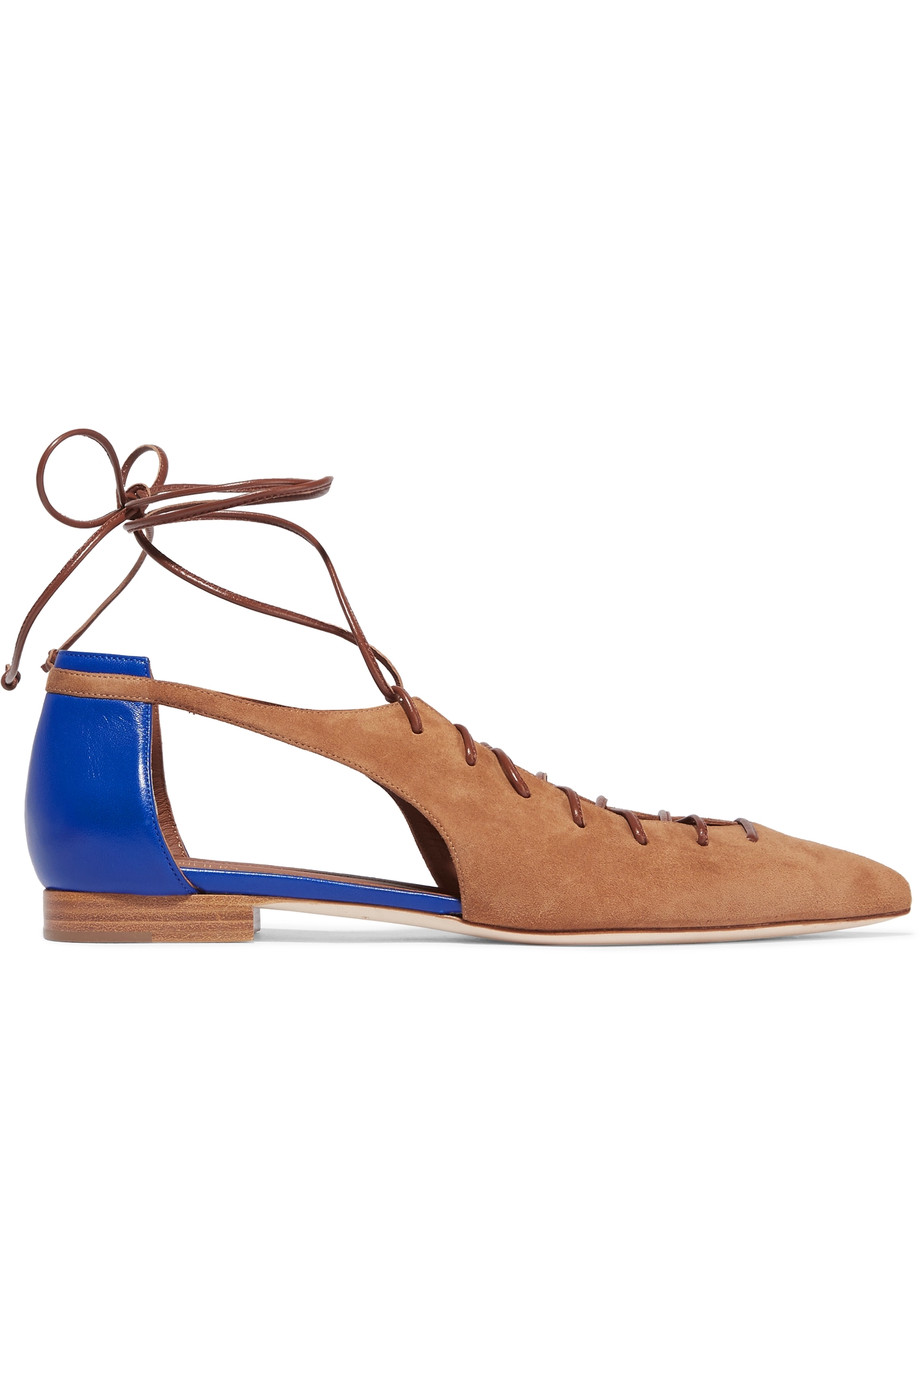 MALONE SOULIERS Montana Cutout Suede And Leather Point-Toe Flats